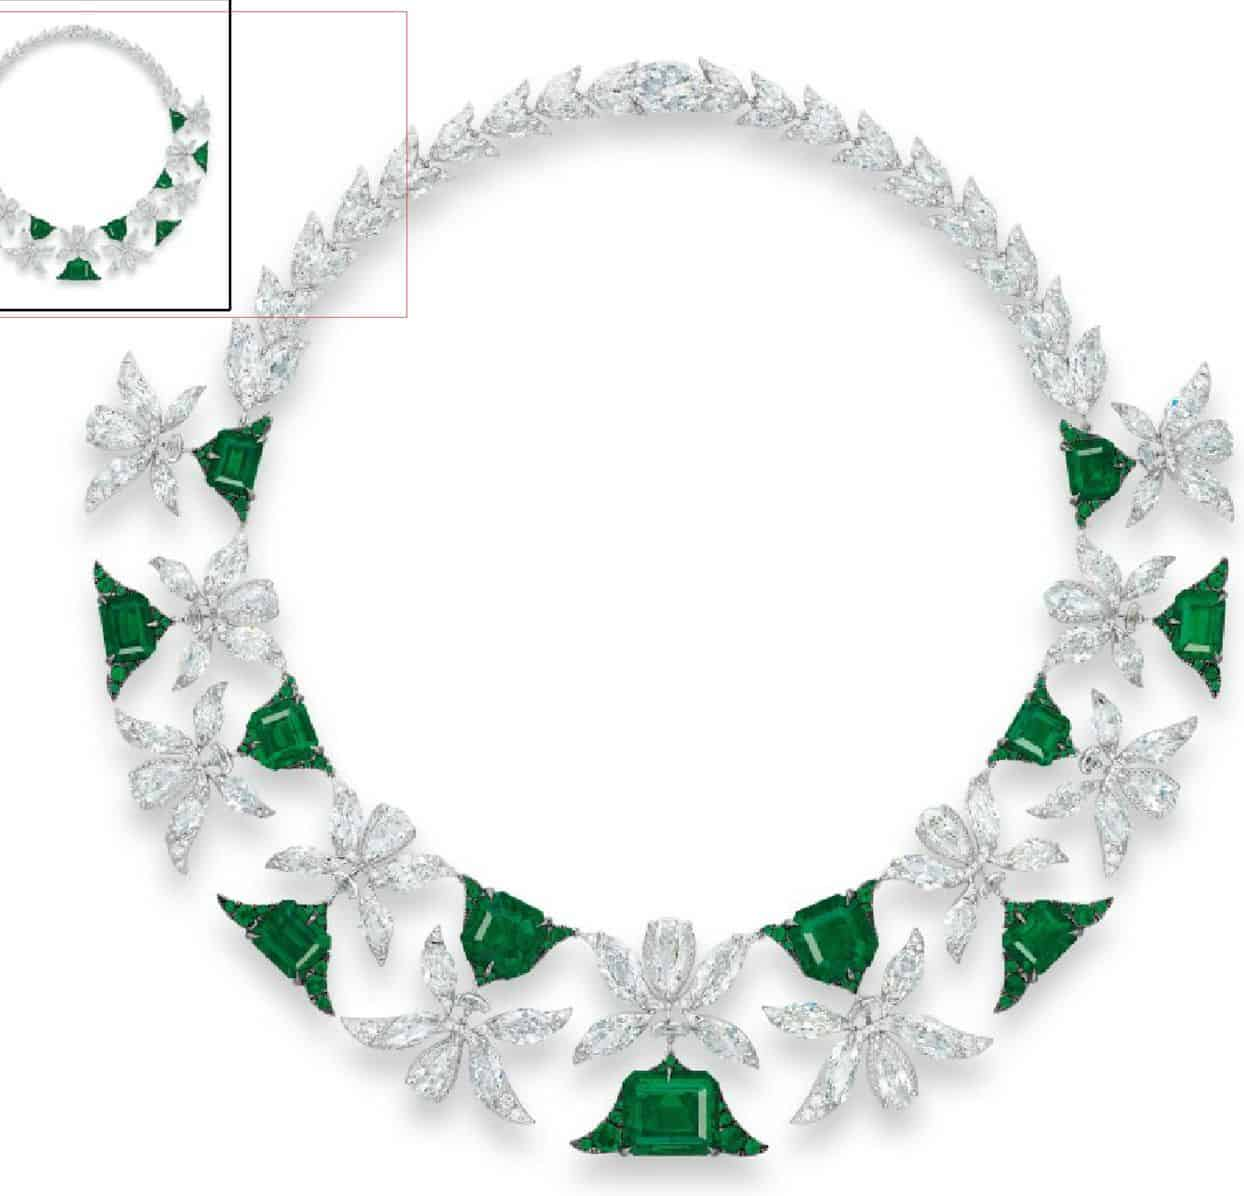 Lot 2043 - A MAGNIFICENT EMERALD AND DIAMOND 'PALMETTE' NECKLACE, BY EDMOND CHIN